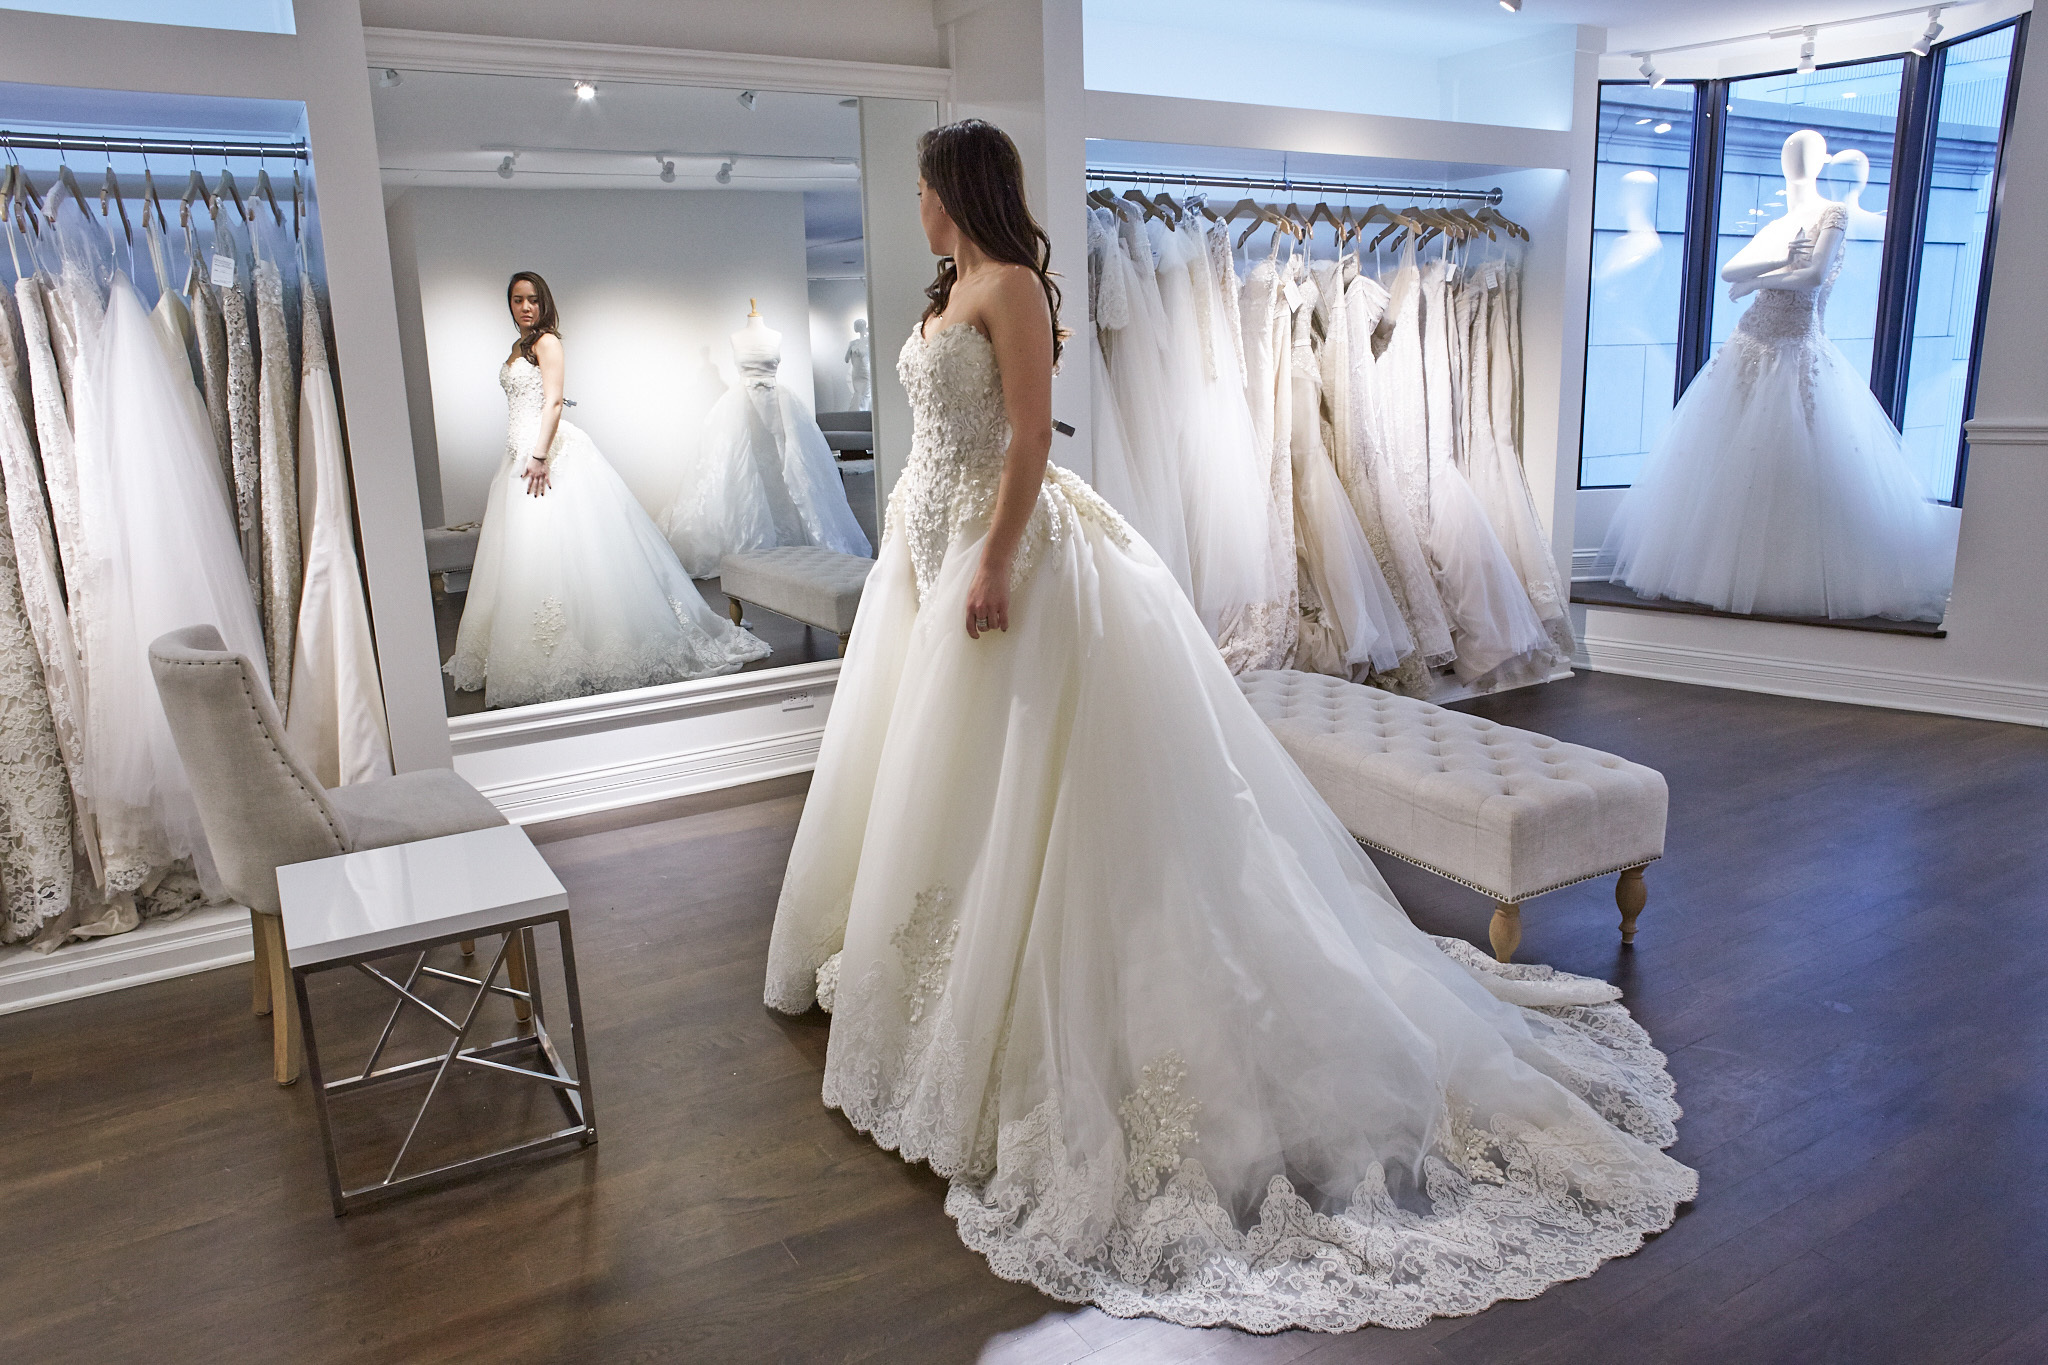 Best online wedding dress shops